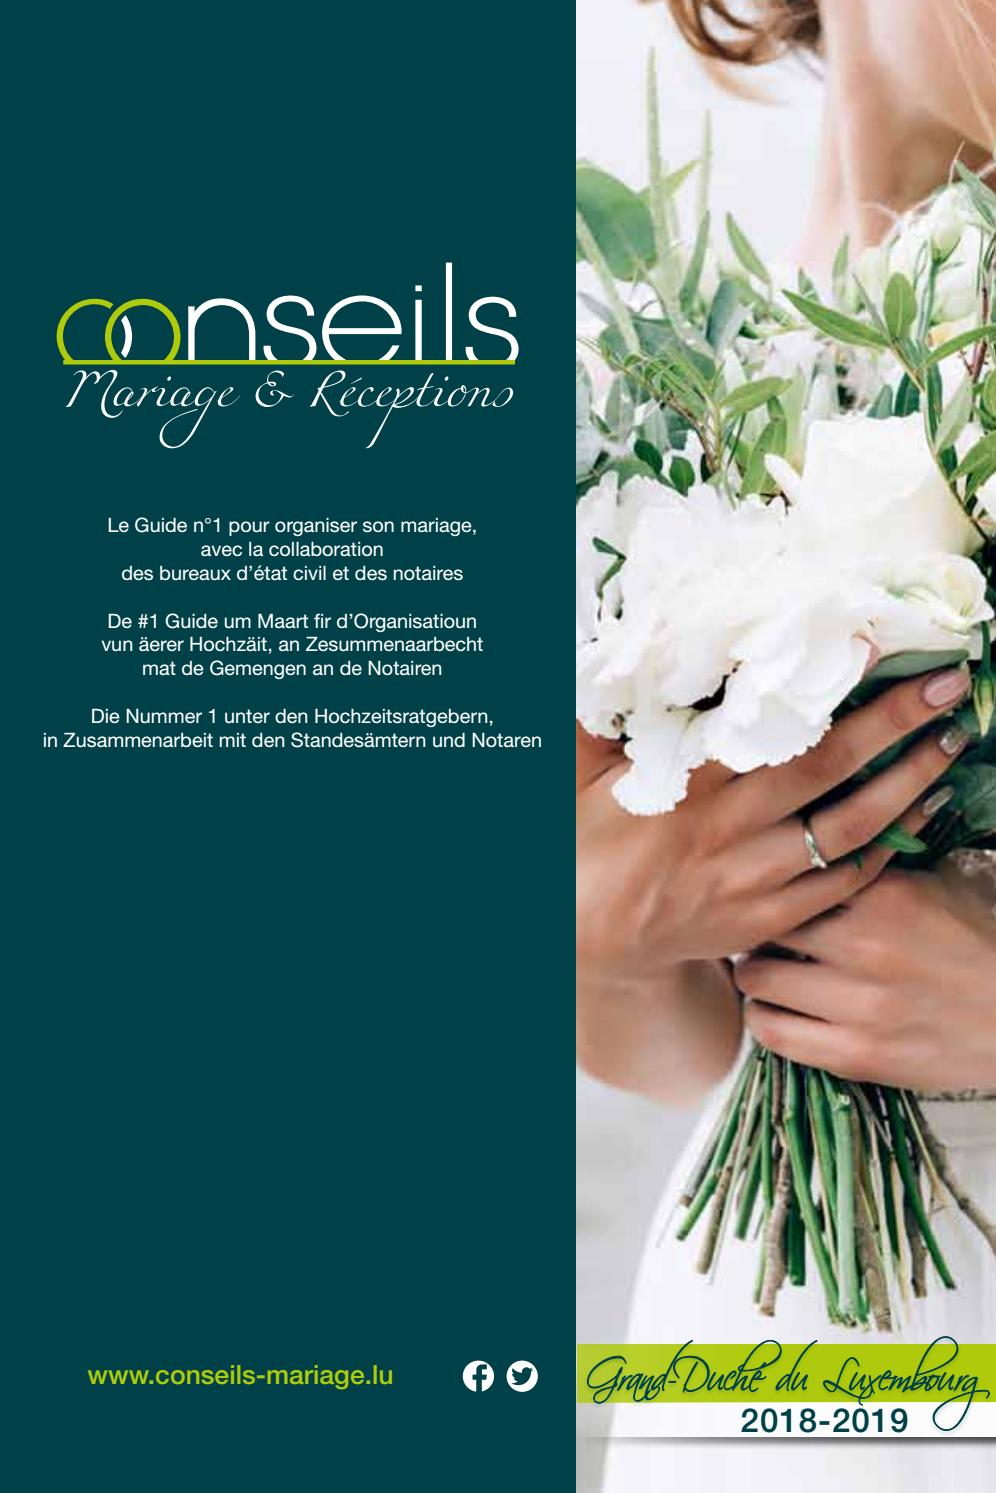 Guide Conseils Mariage Receptions Grand Duche De Luxembourg By